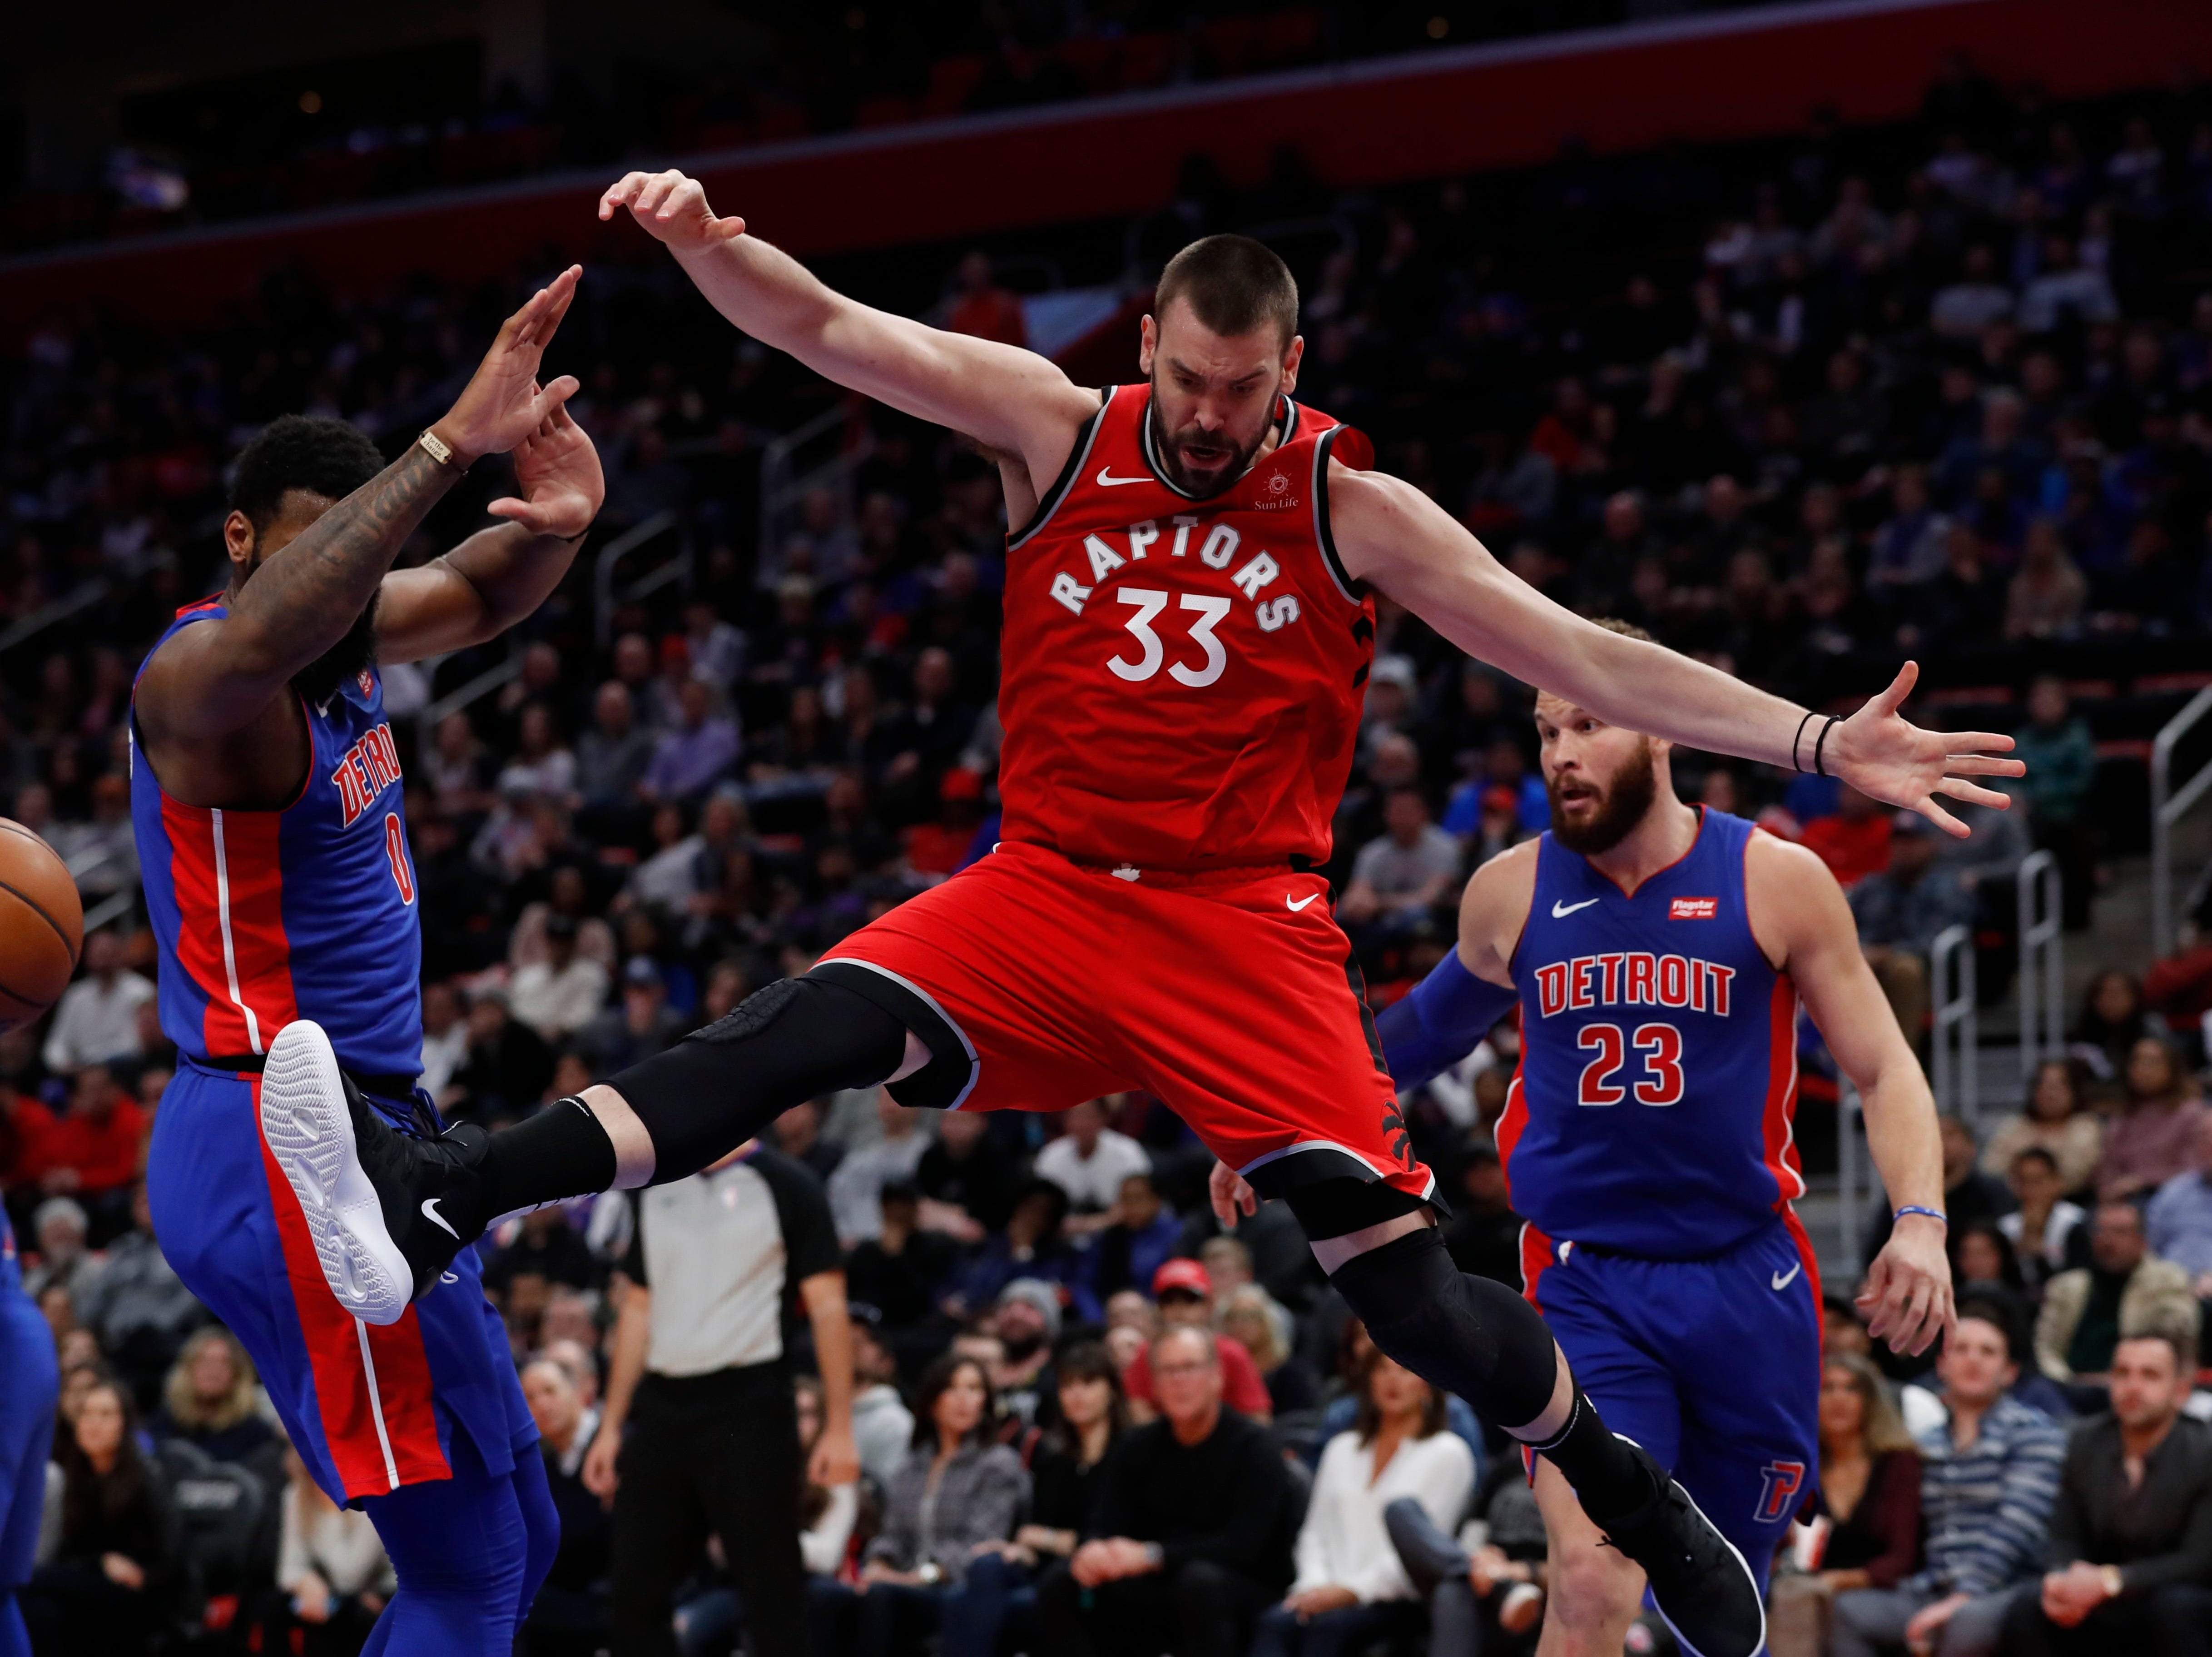 Toronto Raptors center Marc Gasol (33) loses control of the ball during the second half.